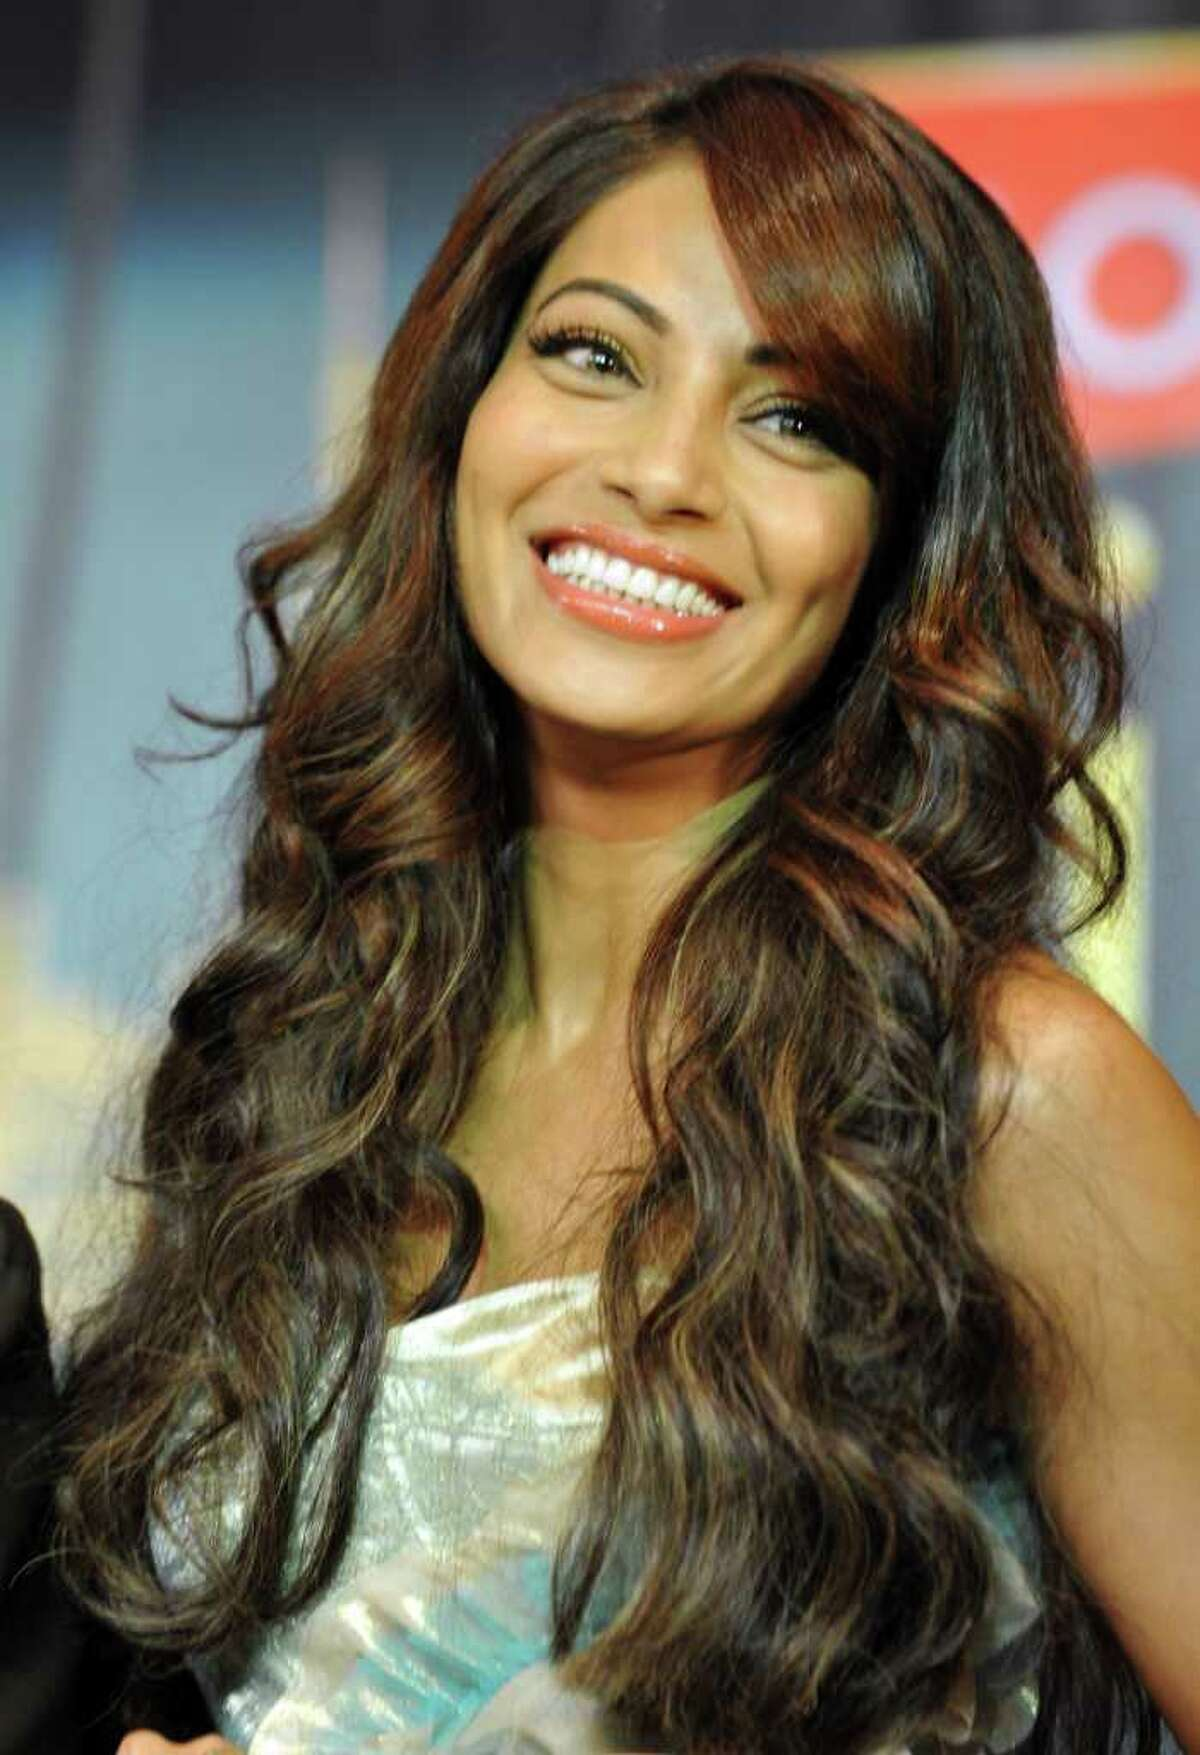 Bollywood actress Bipasha Basu is seen at an introductory press conference ahead of the 2011 International Indian Film Academy (IIFA) awards in Toronto, Ontario.